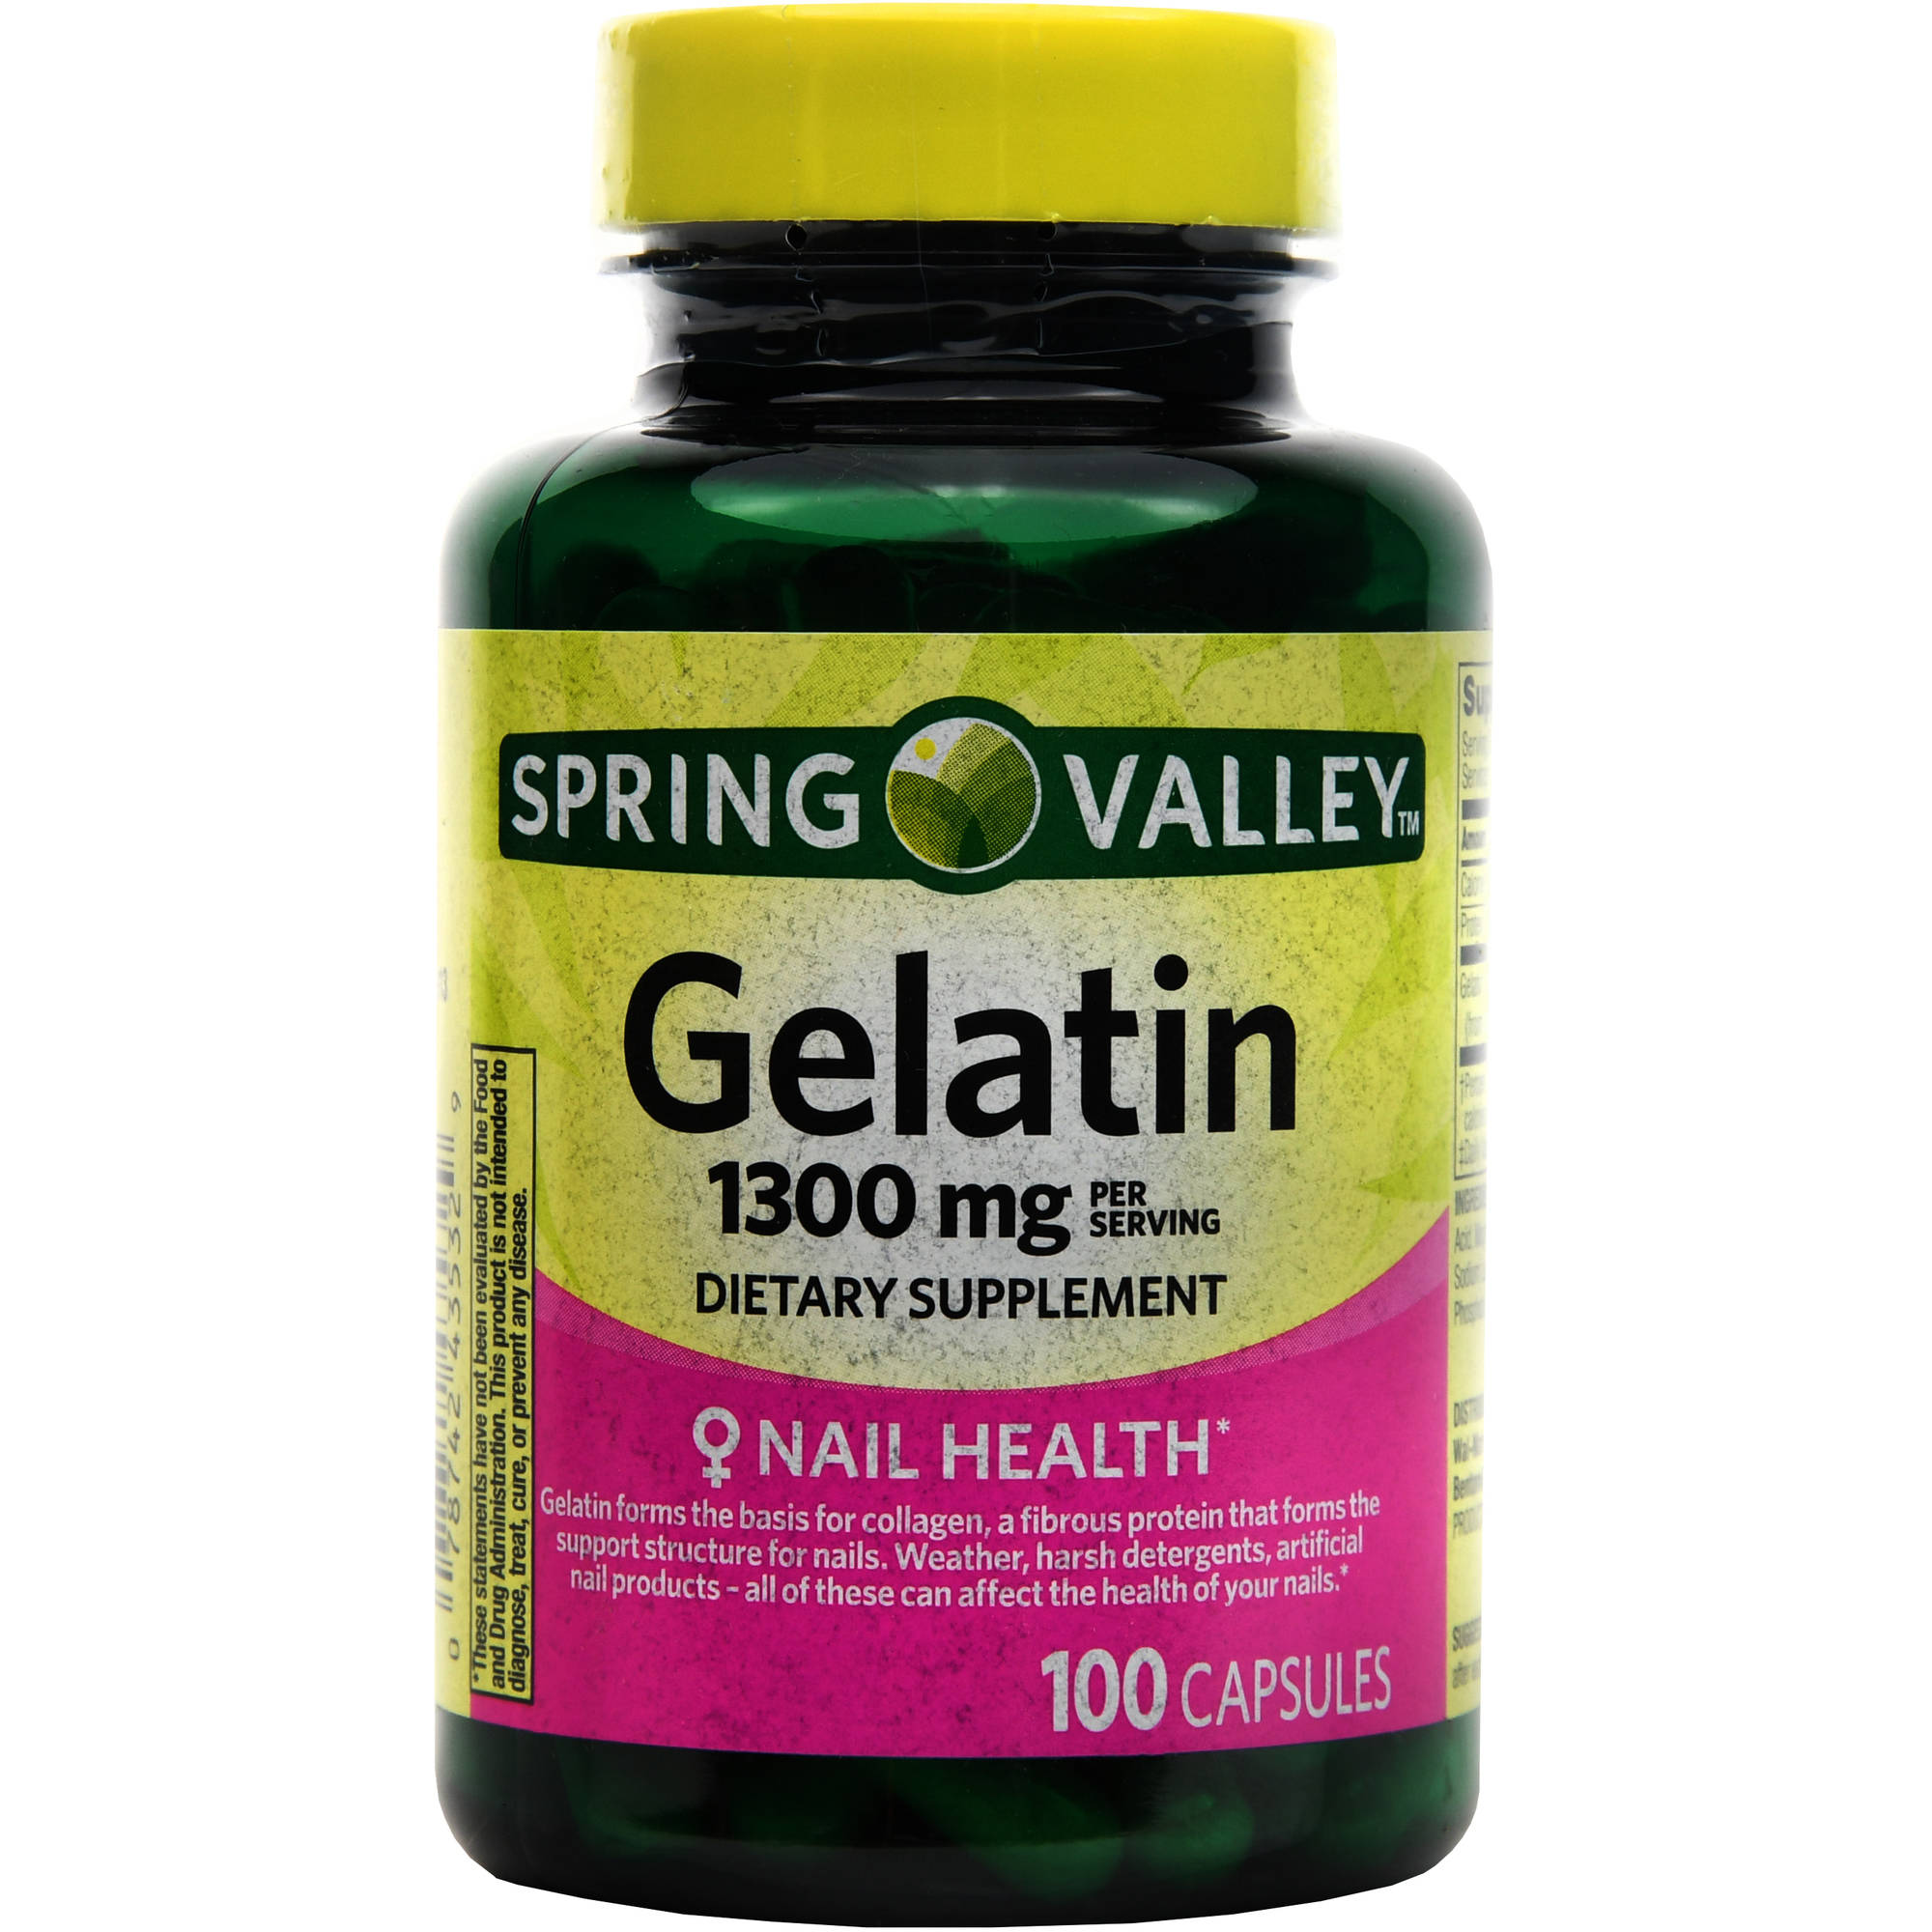 Spring Valley Gelatin Capsules, 1300 mg, 100 count